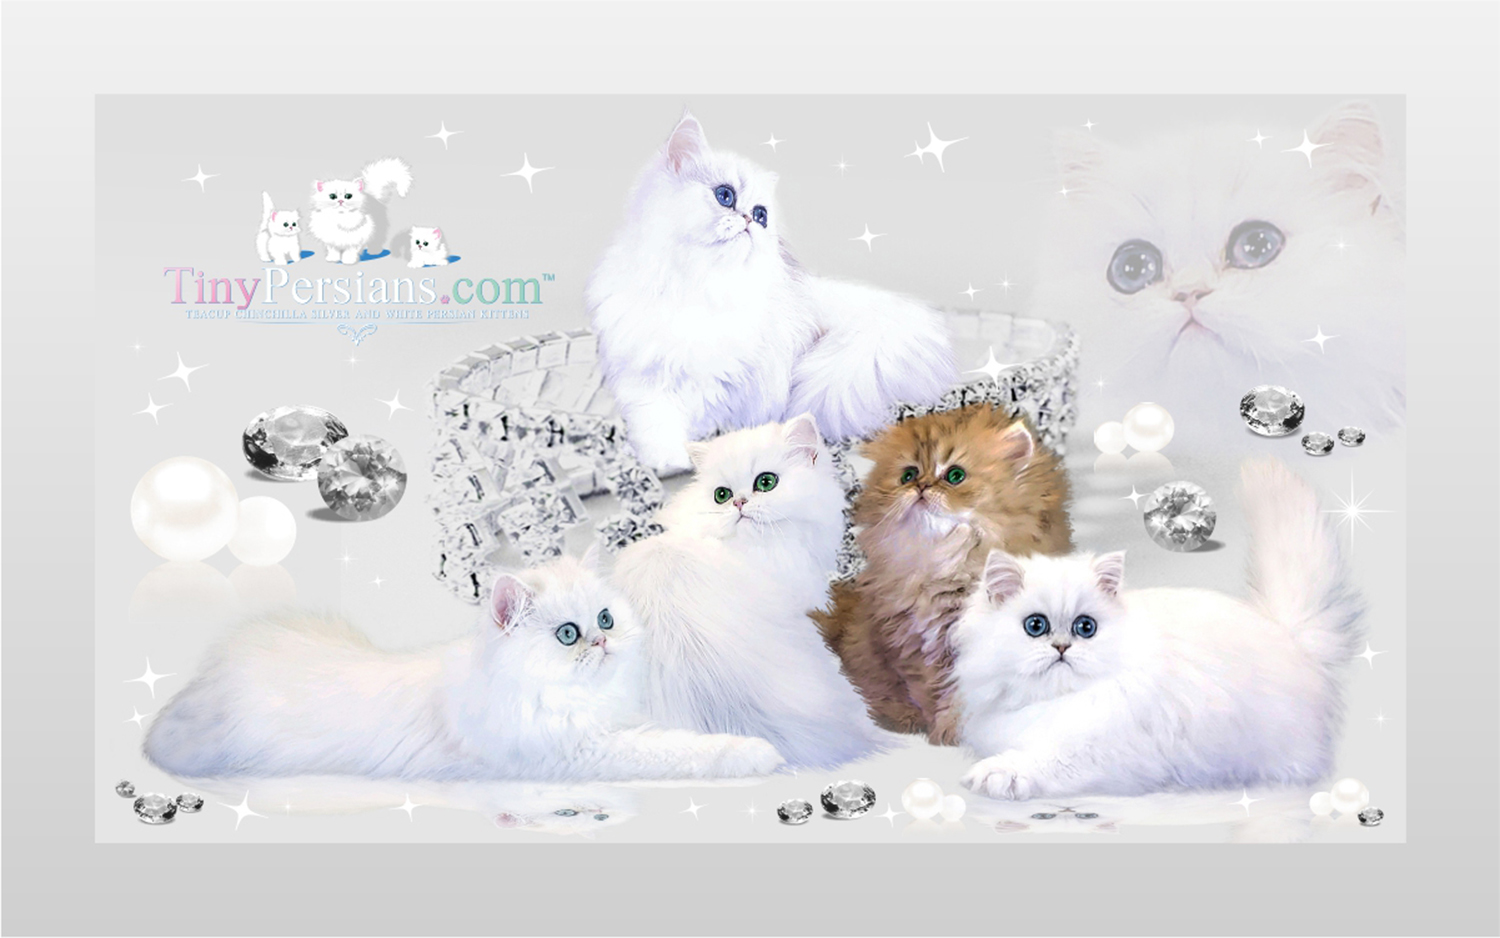 Tiny Persians